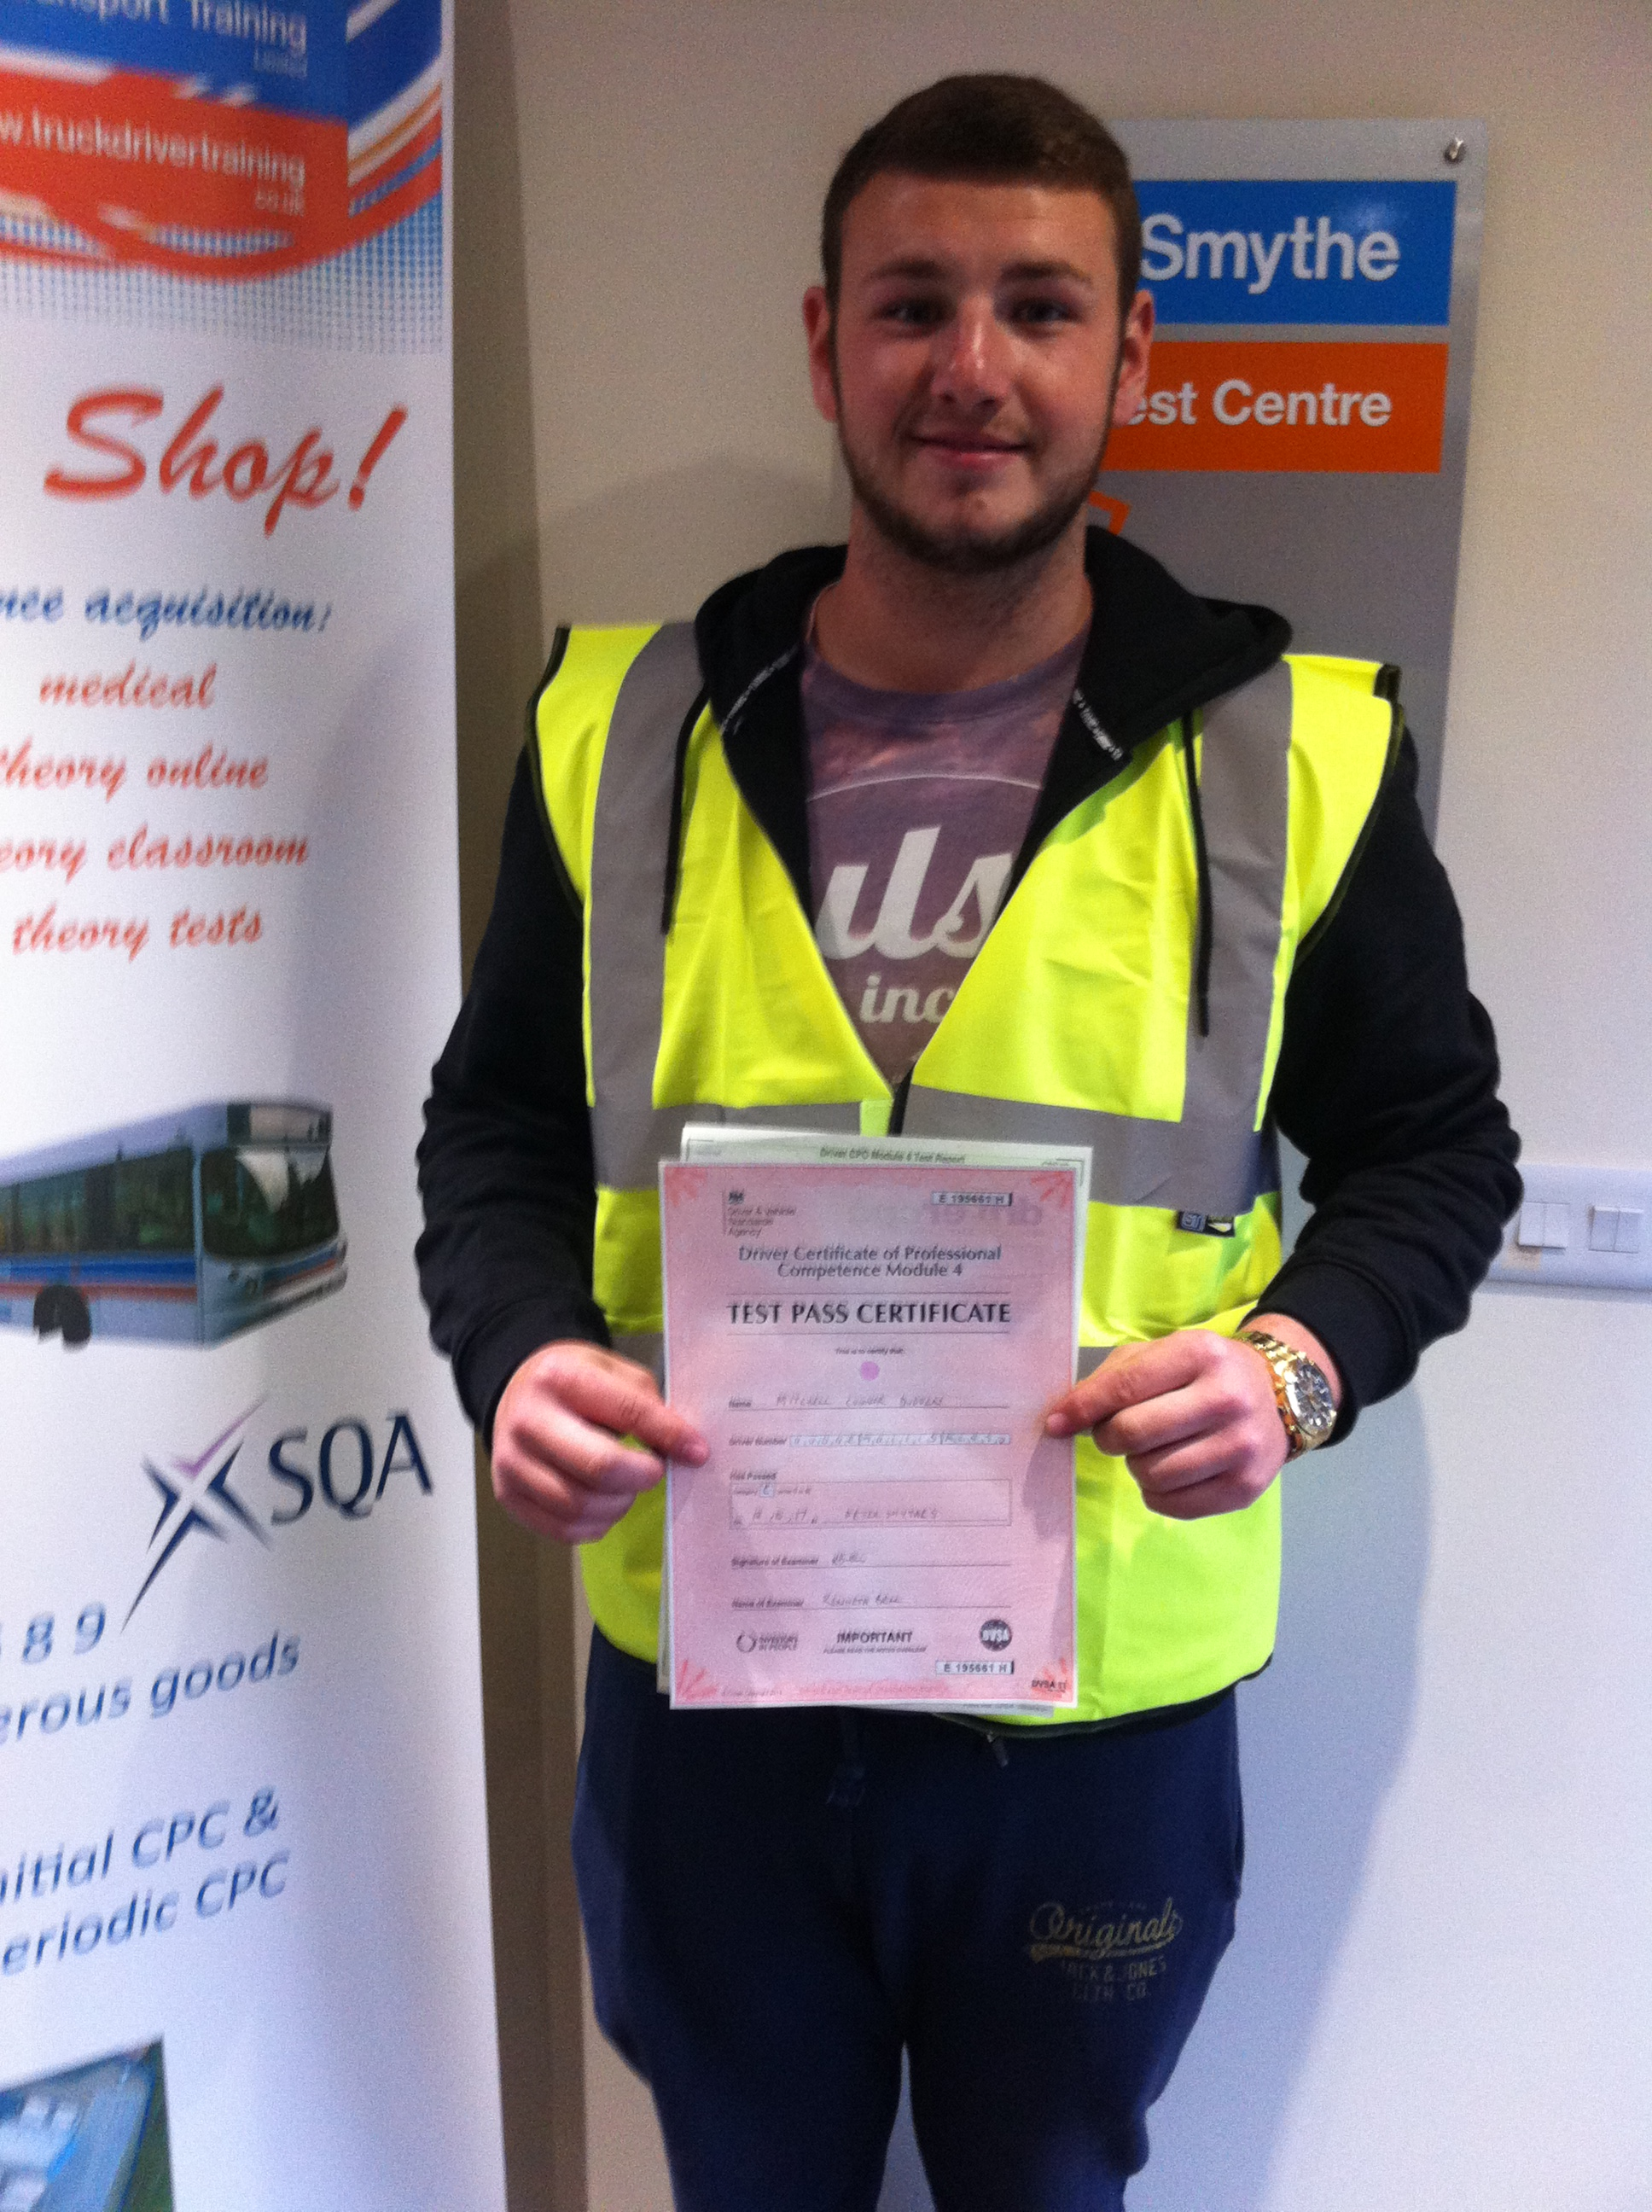 Mitchell Dudden from Mansfield PASSED CPC MOD 4#ipassedwithpstt